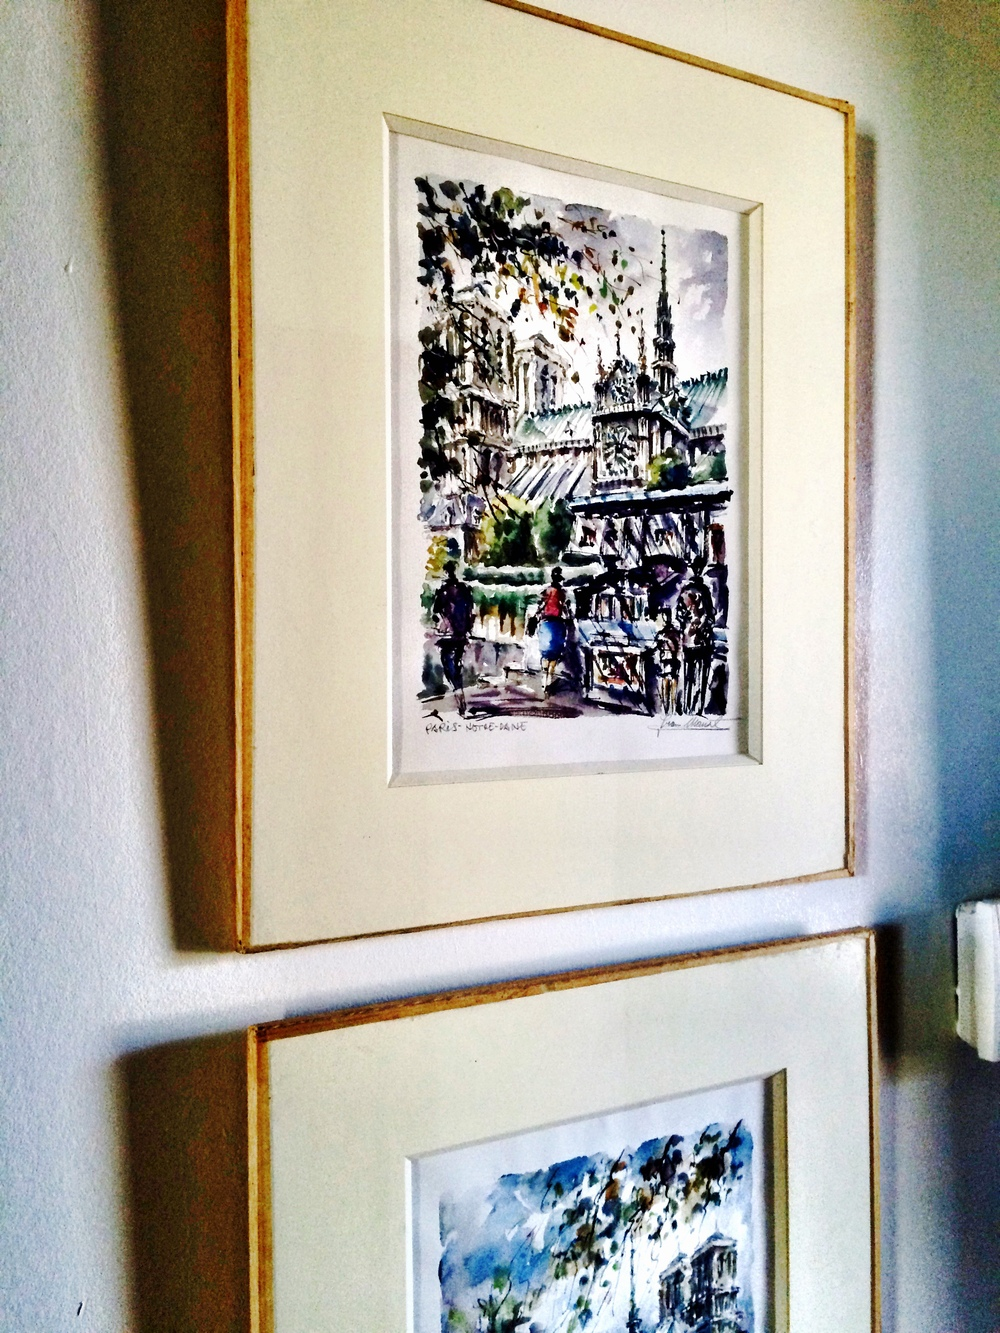 Home / apartment decor; frame; art | Remodeled by Deborah Peterson Milne